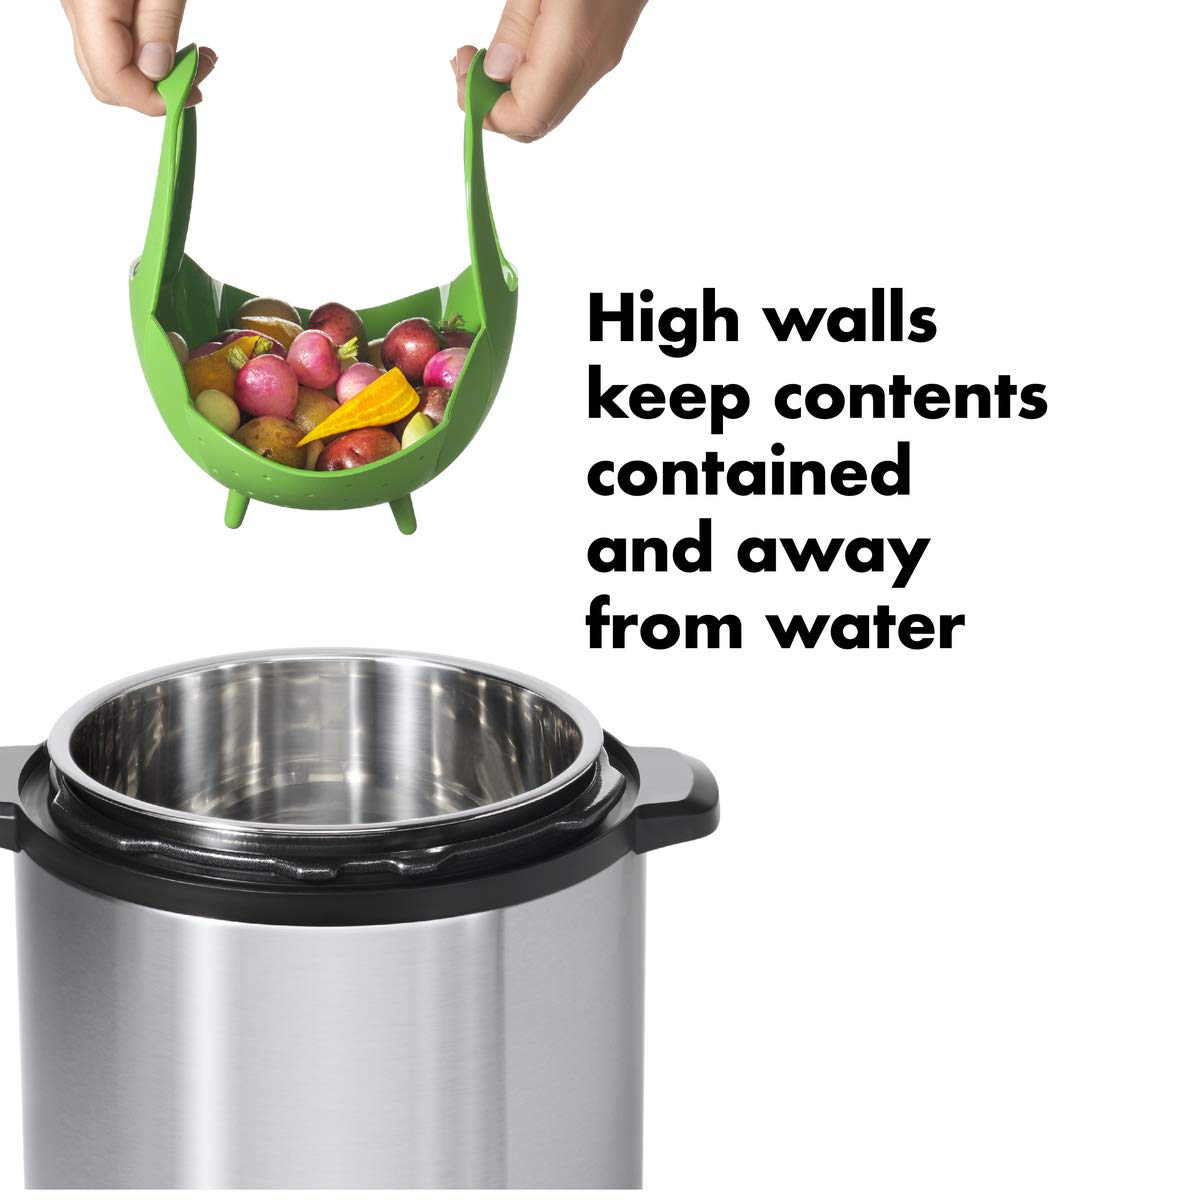 OXO Good Grips Silicone Steamer, Green by OXO (Image #4)